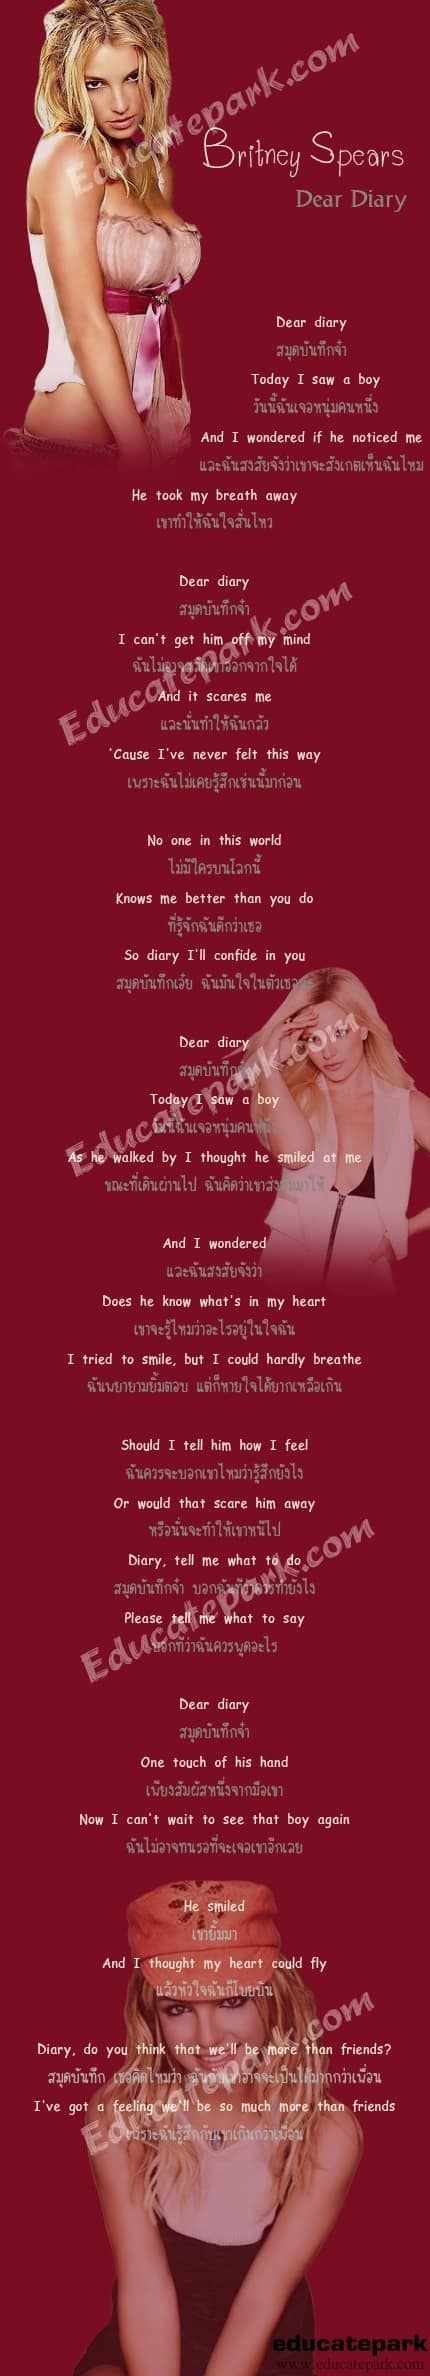 แปลเพลง Dear Diary - Britney Spears